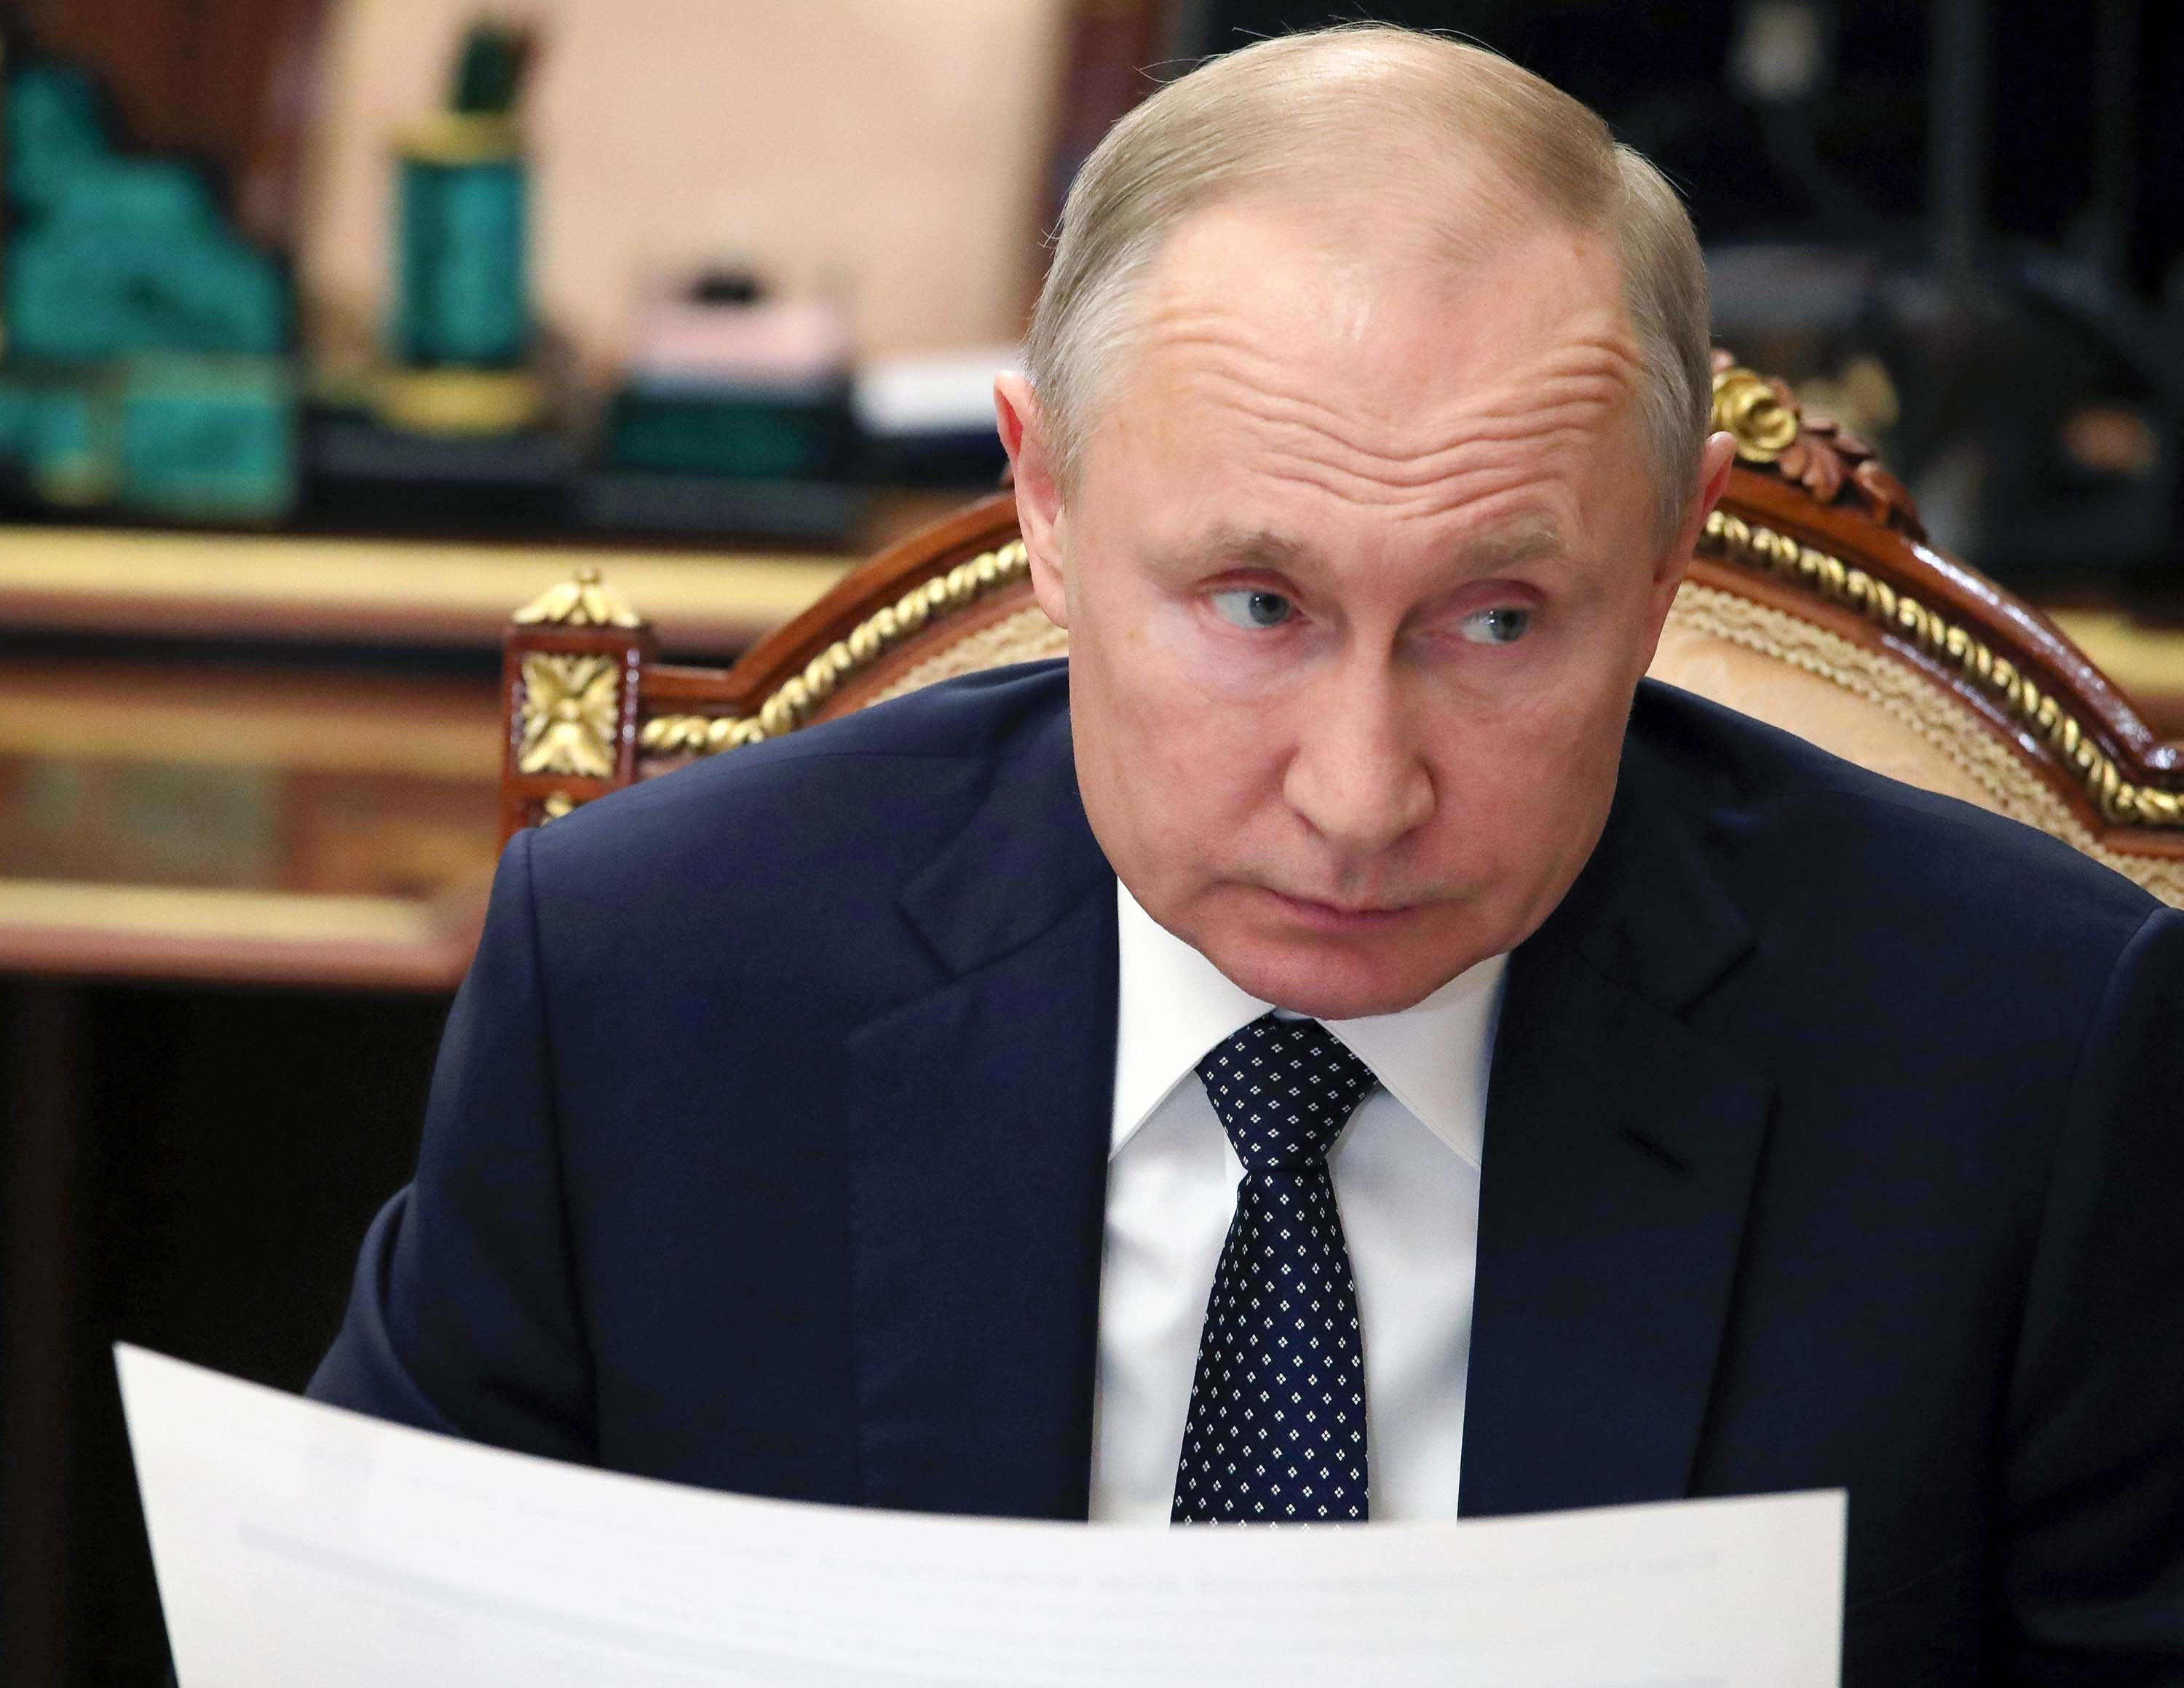 Russian President Vladimir Putin listens during a meeting in the Kremlin, in Moscow, Russia, Monday, April 6.